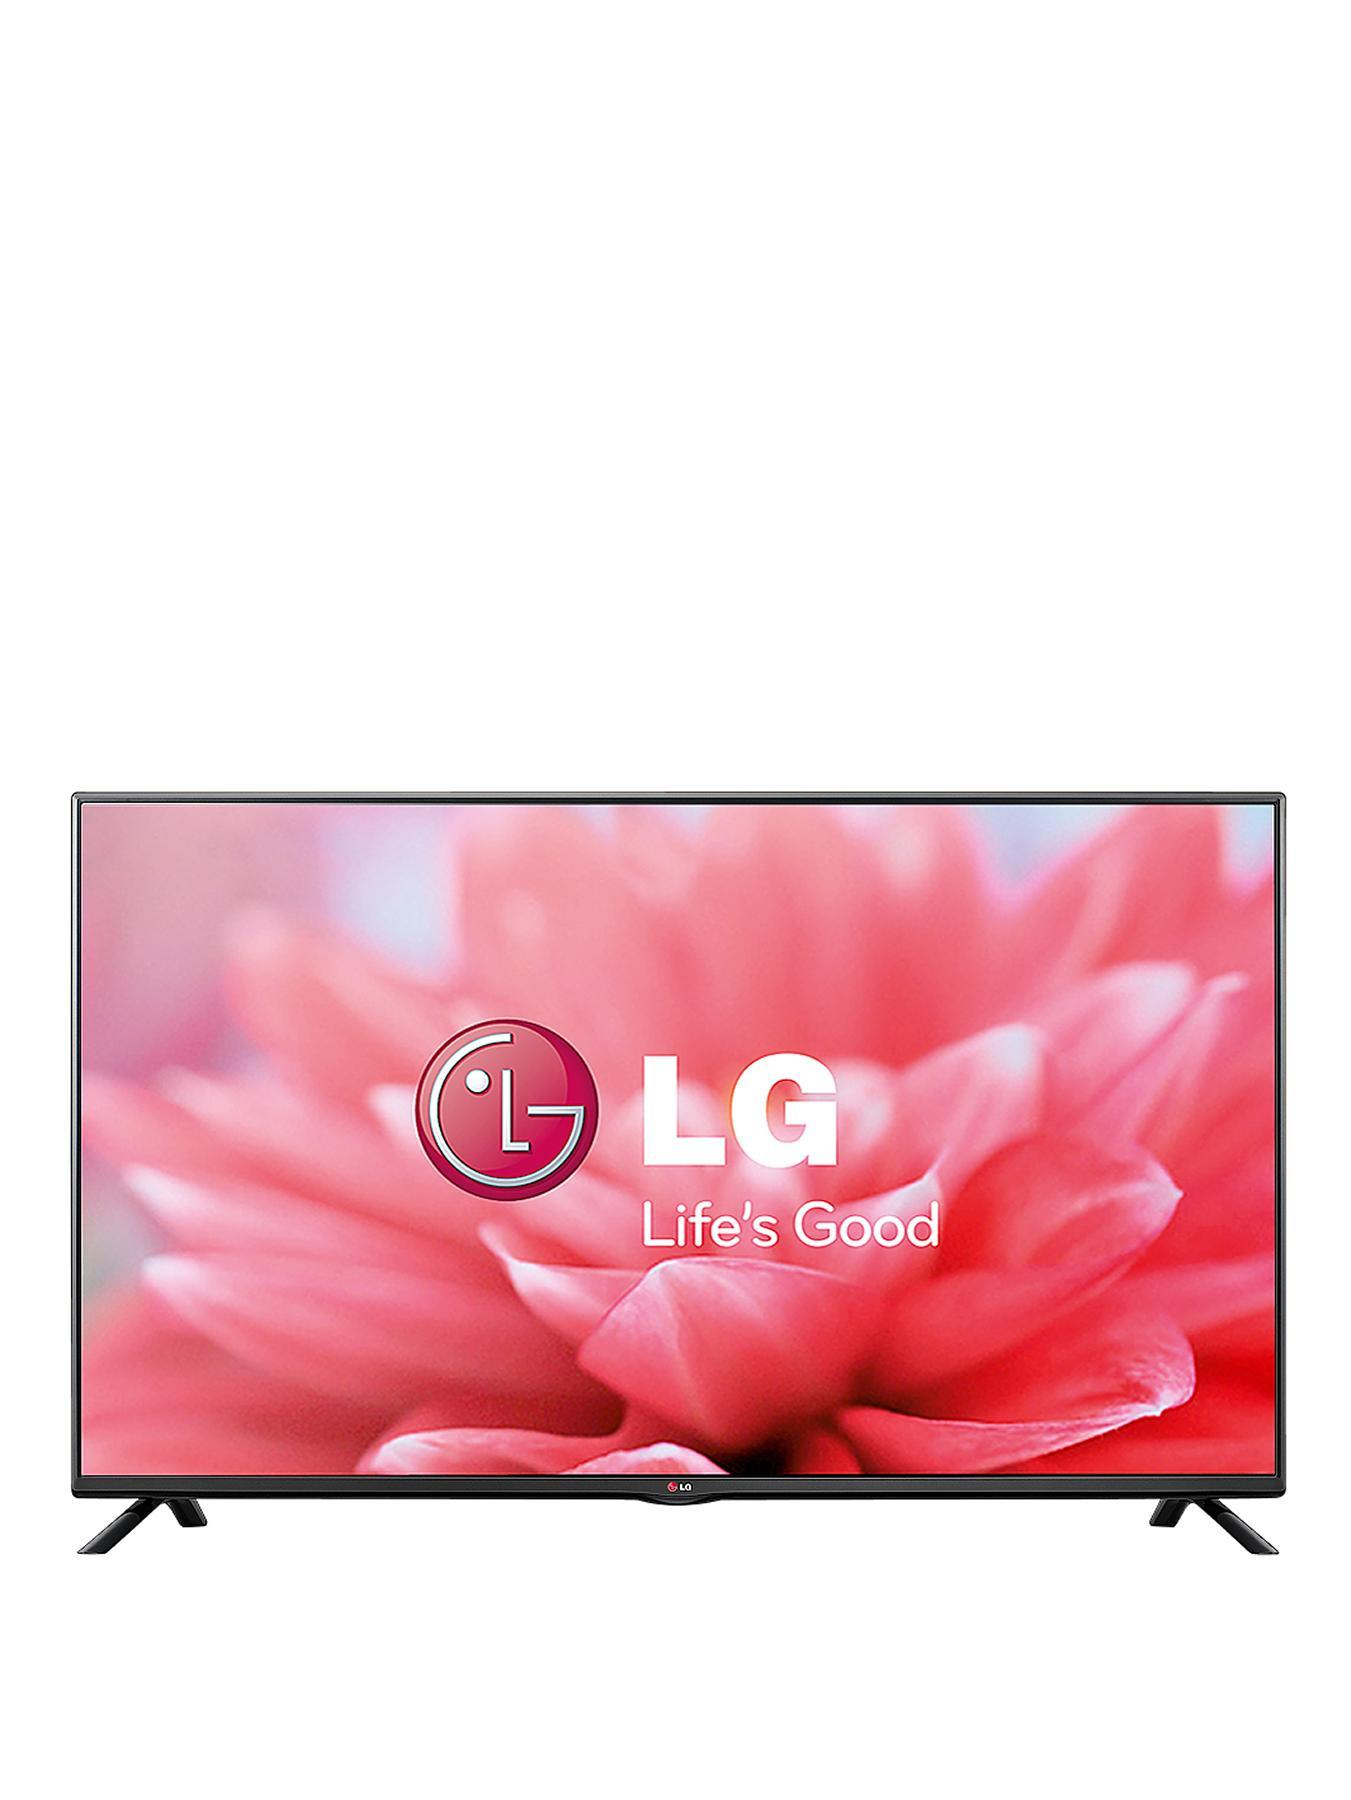 LG 42LB550V 42-inch Widescreen Full HD 1080p LED TV with Freeview HD